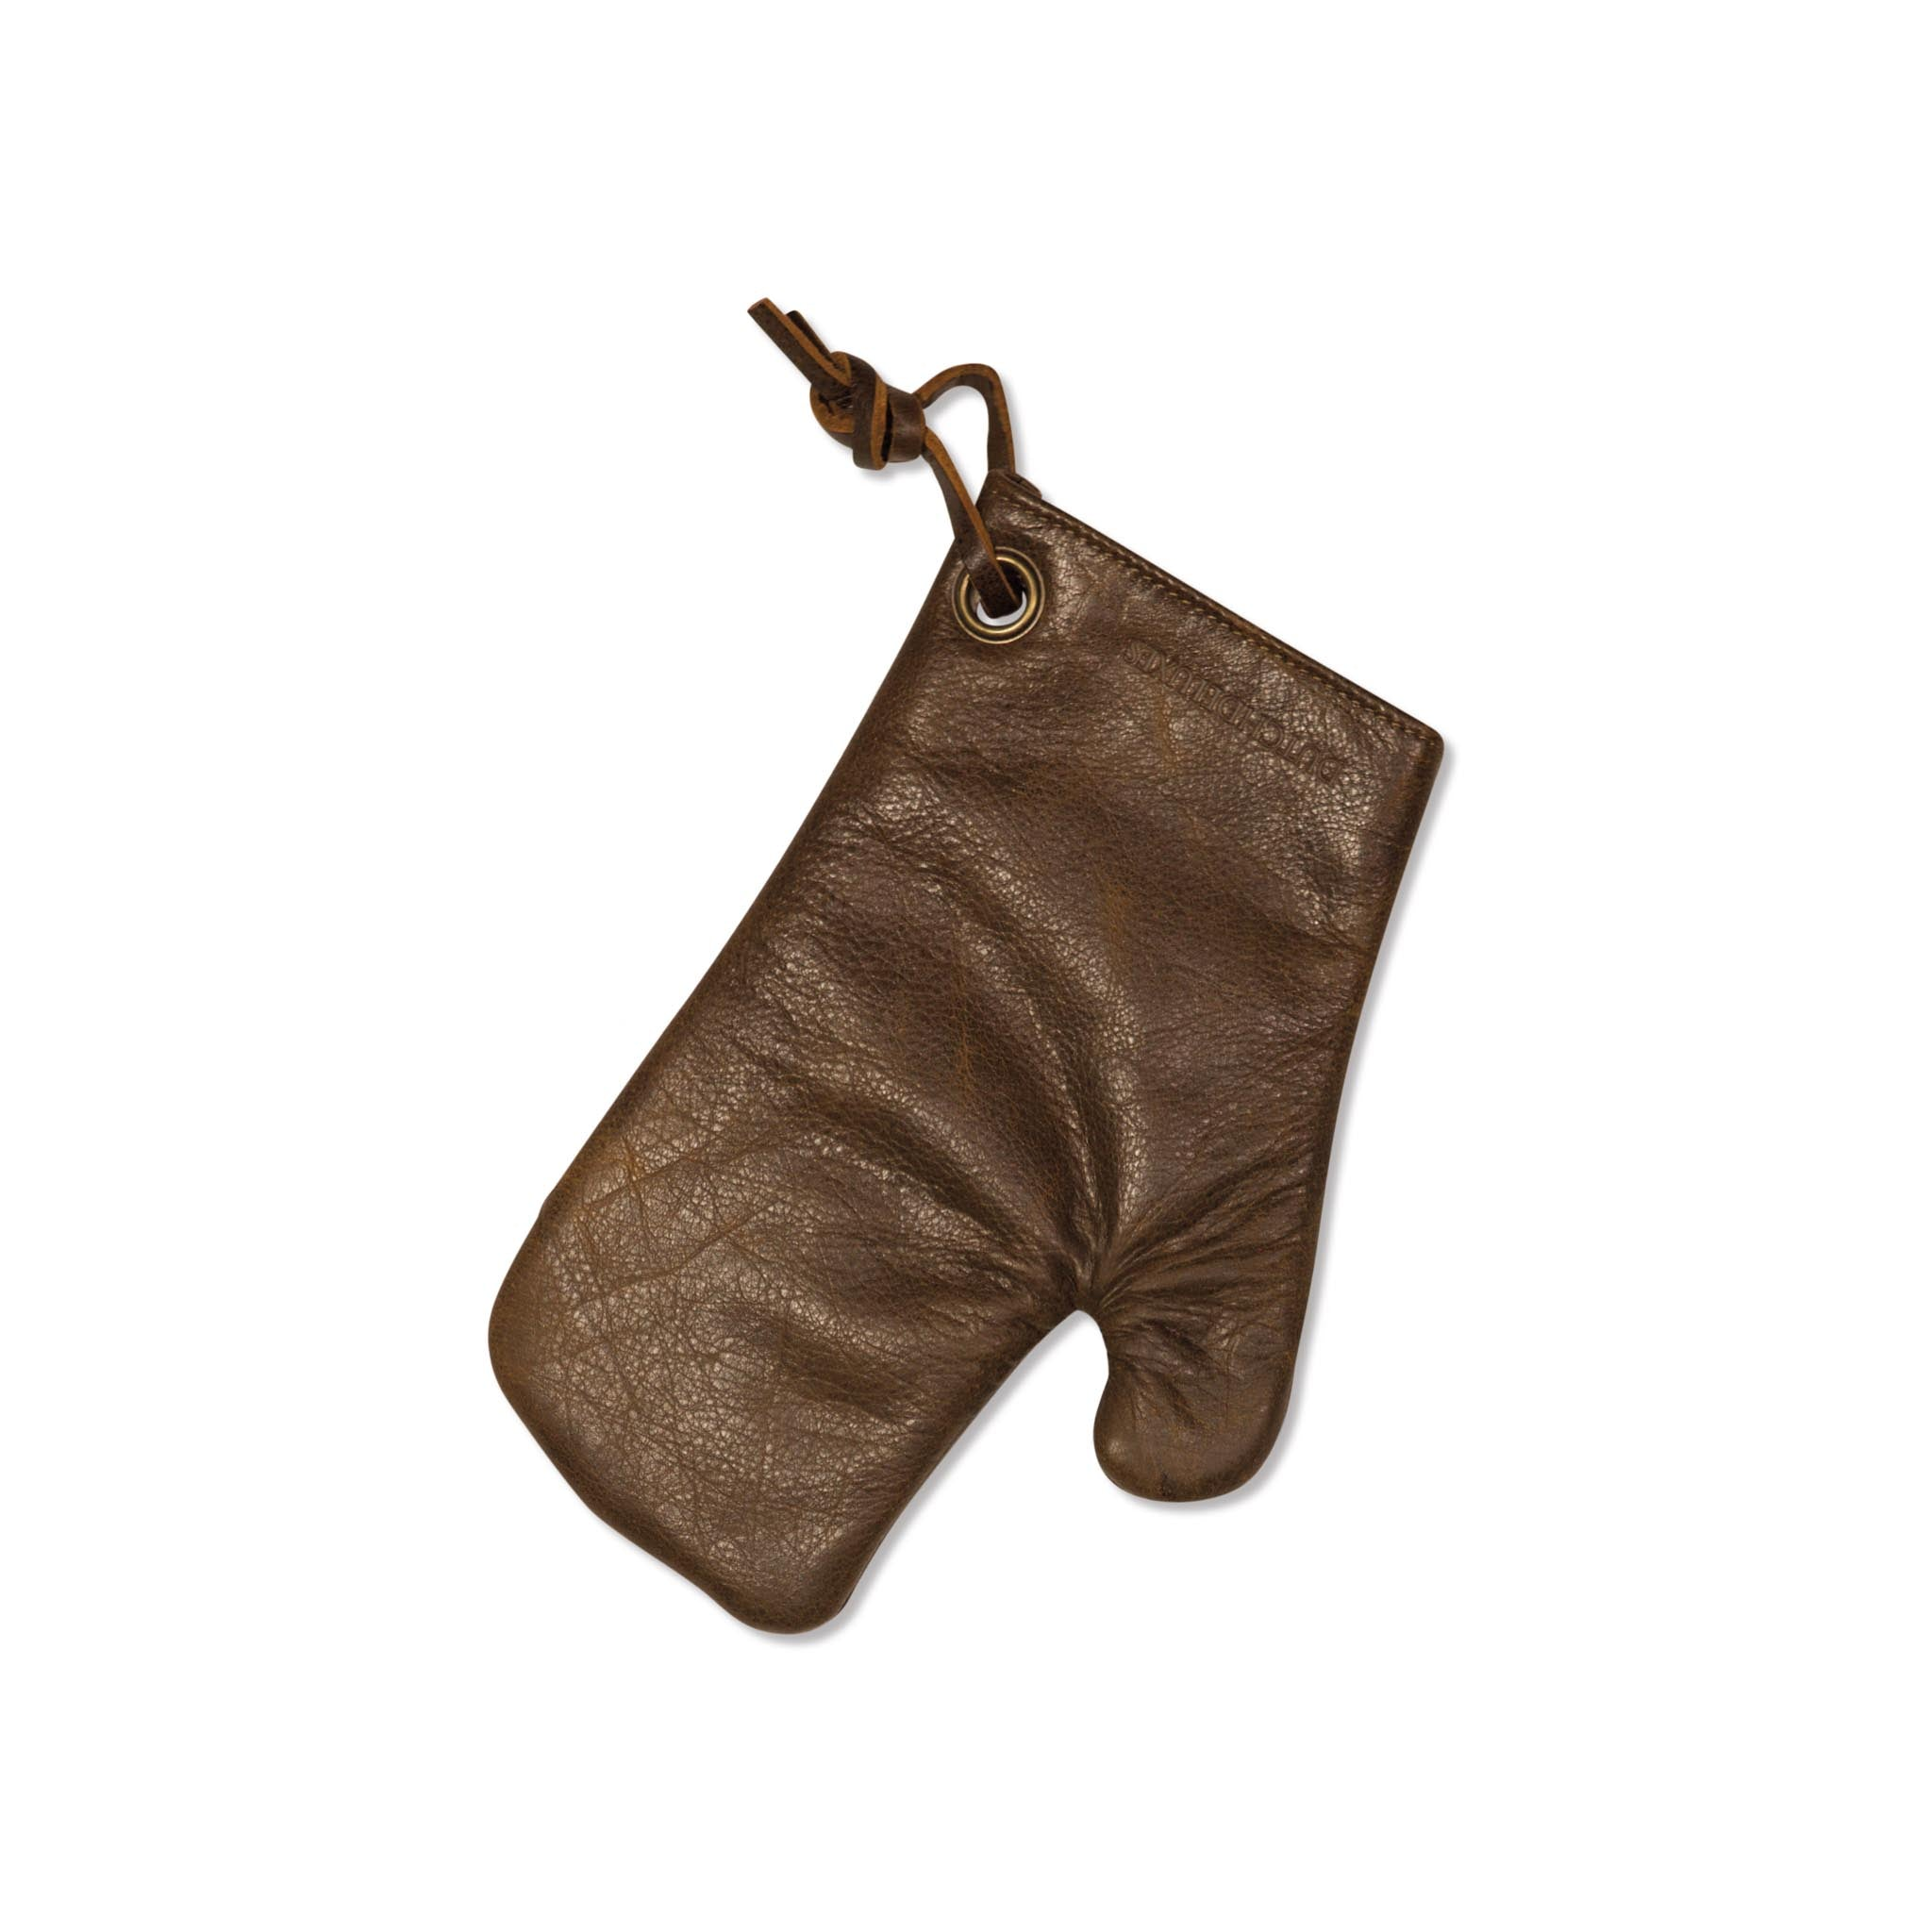 Dutchdeluxes Leather Oven Glove in Vintage Brown Cookware Kitchen Clothing